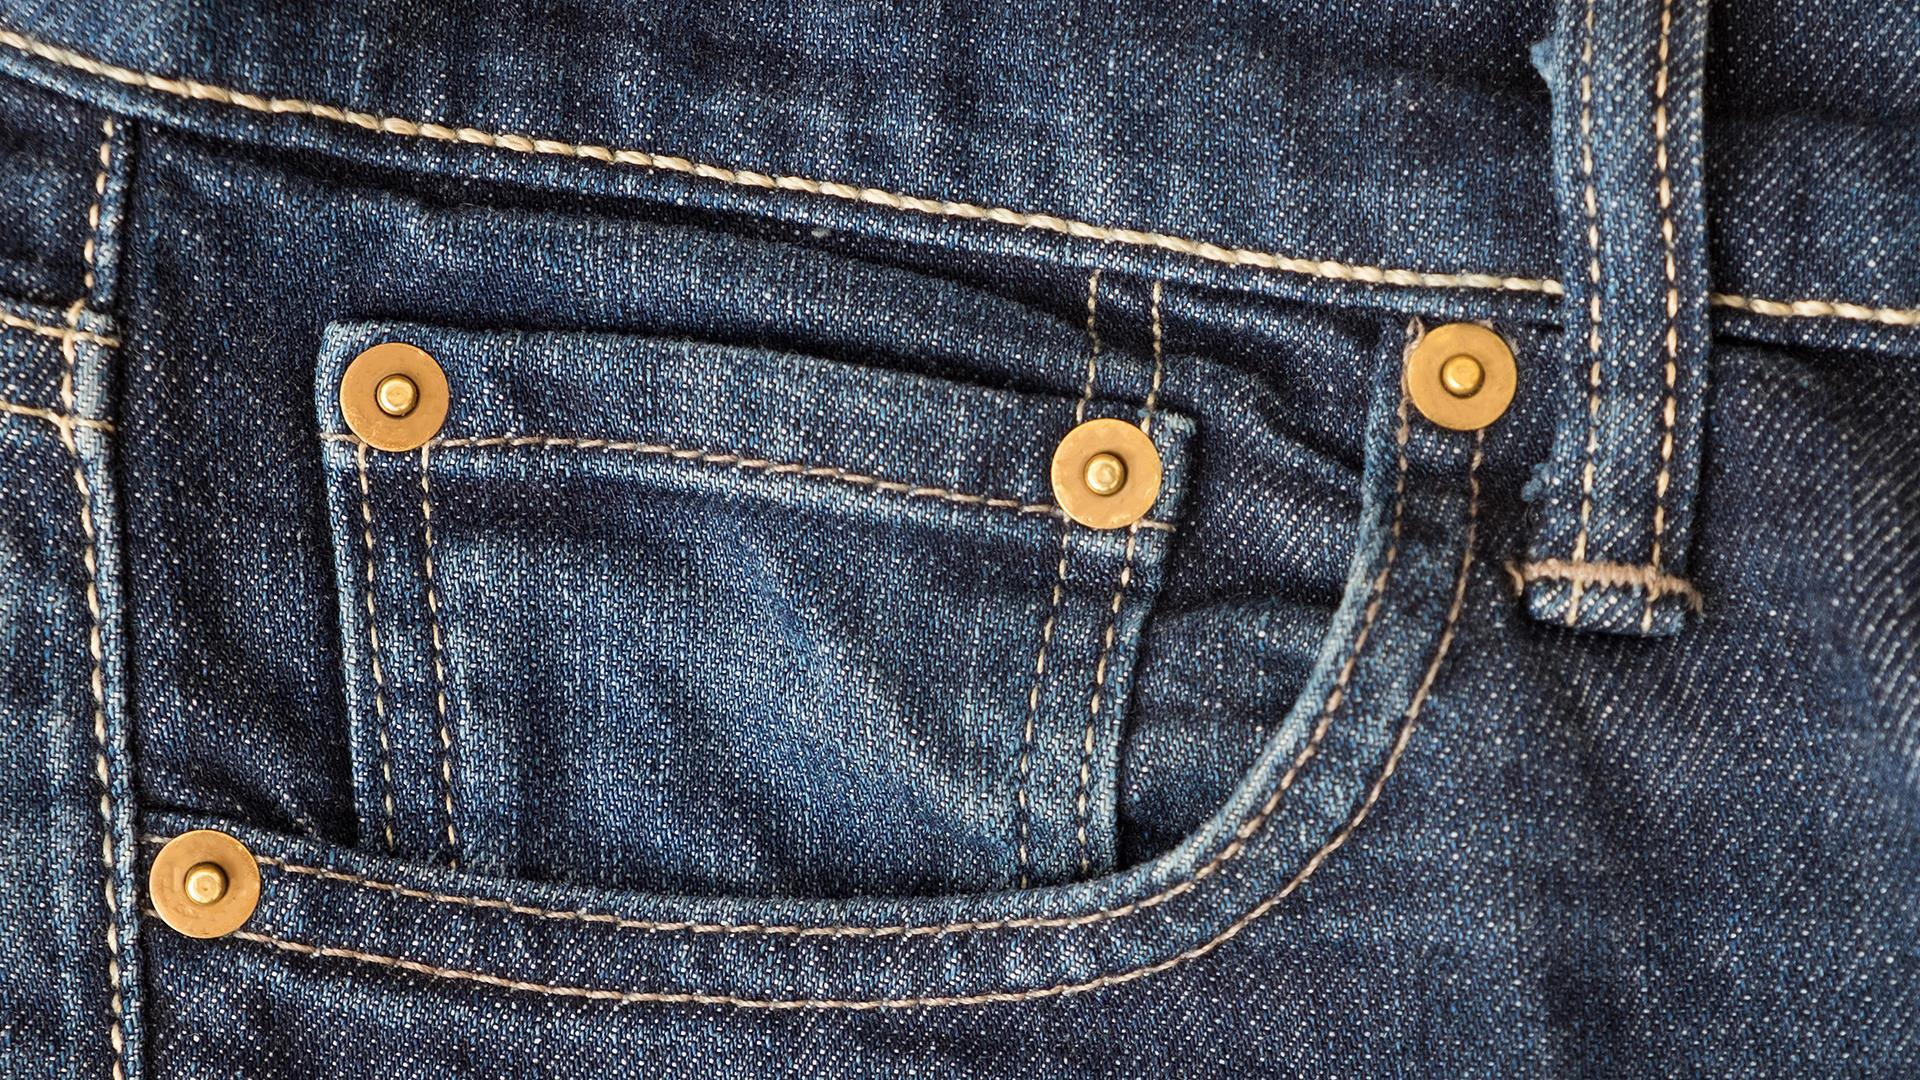 Jean rivets: What are those little studs actually for?